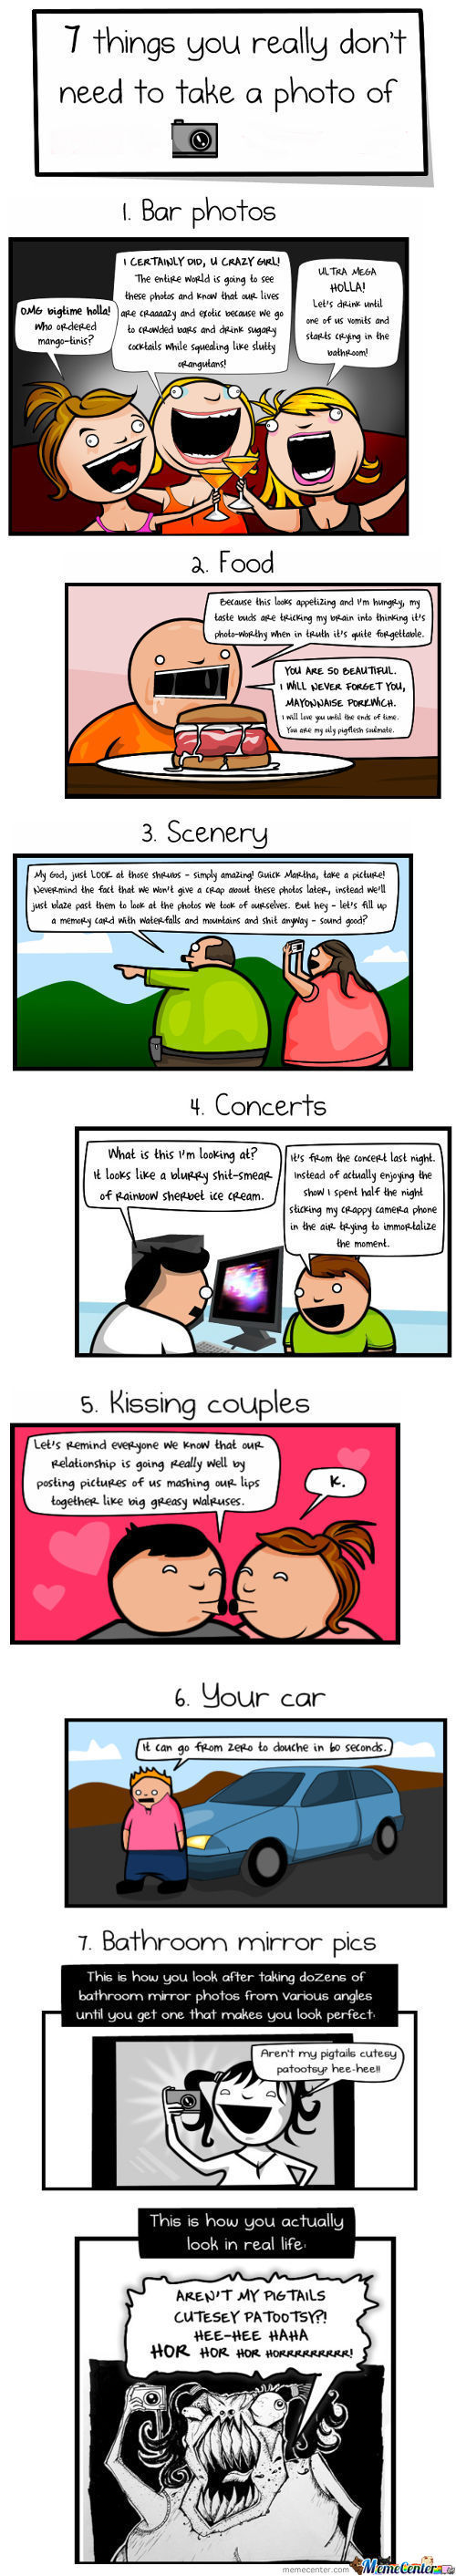 7 Things You Should Not Take A Picture Of!